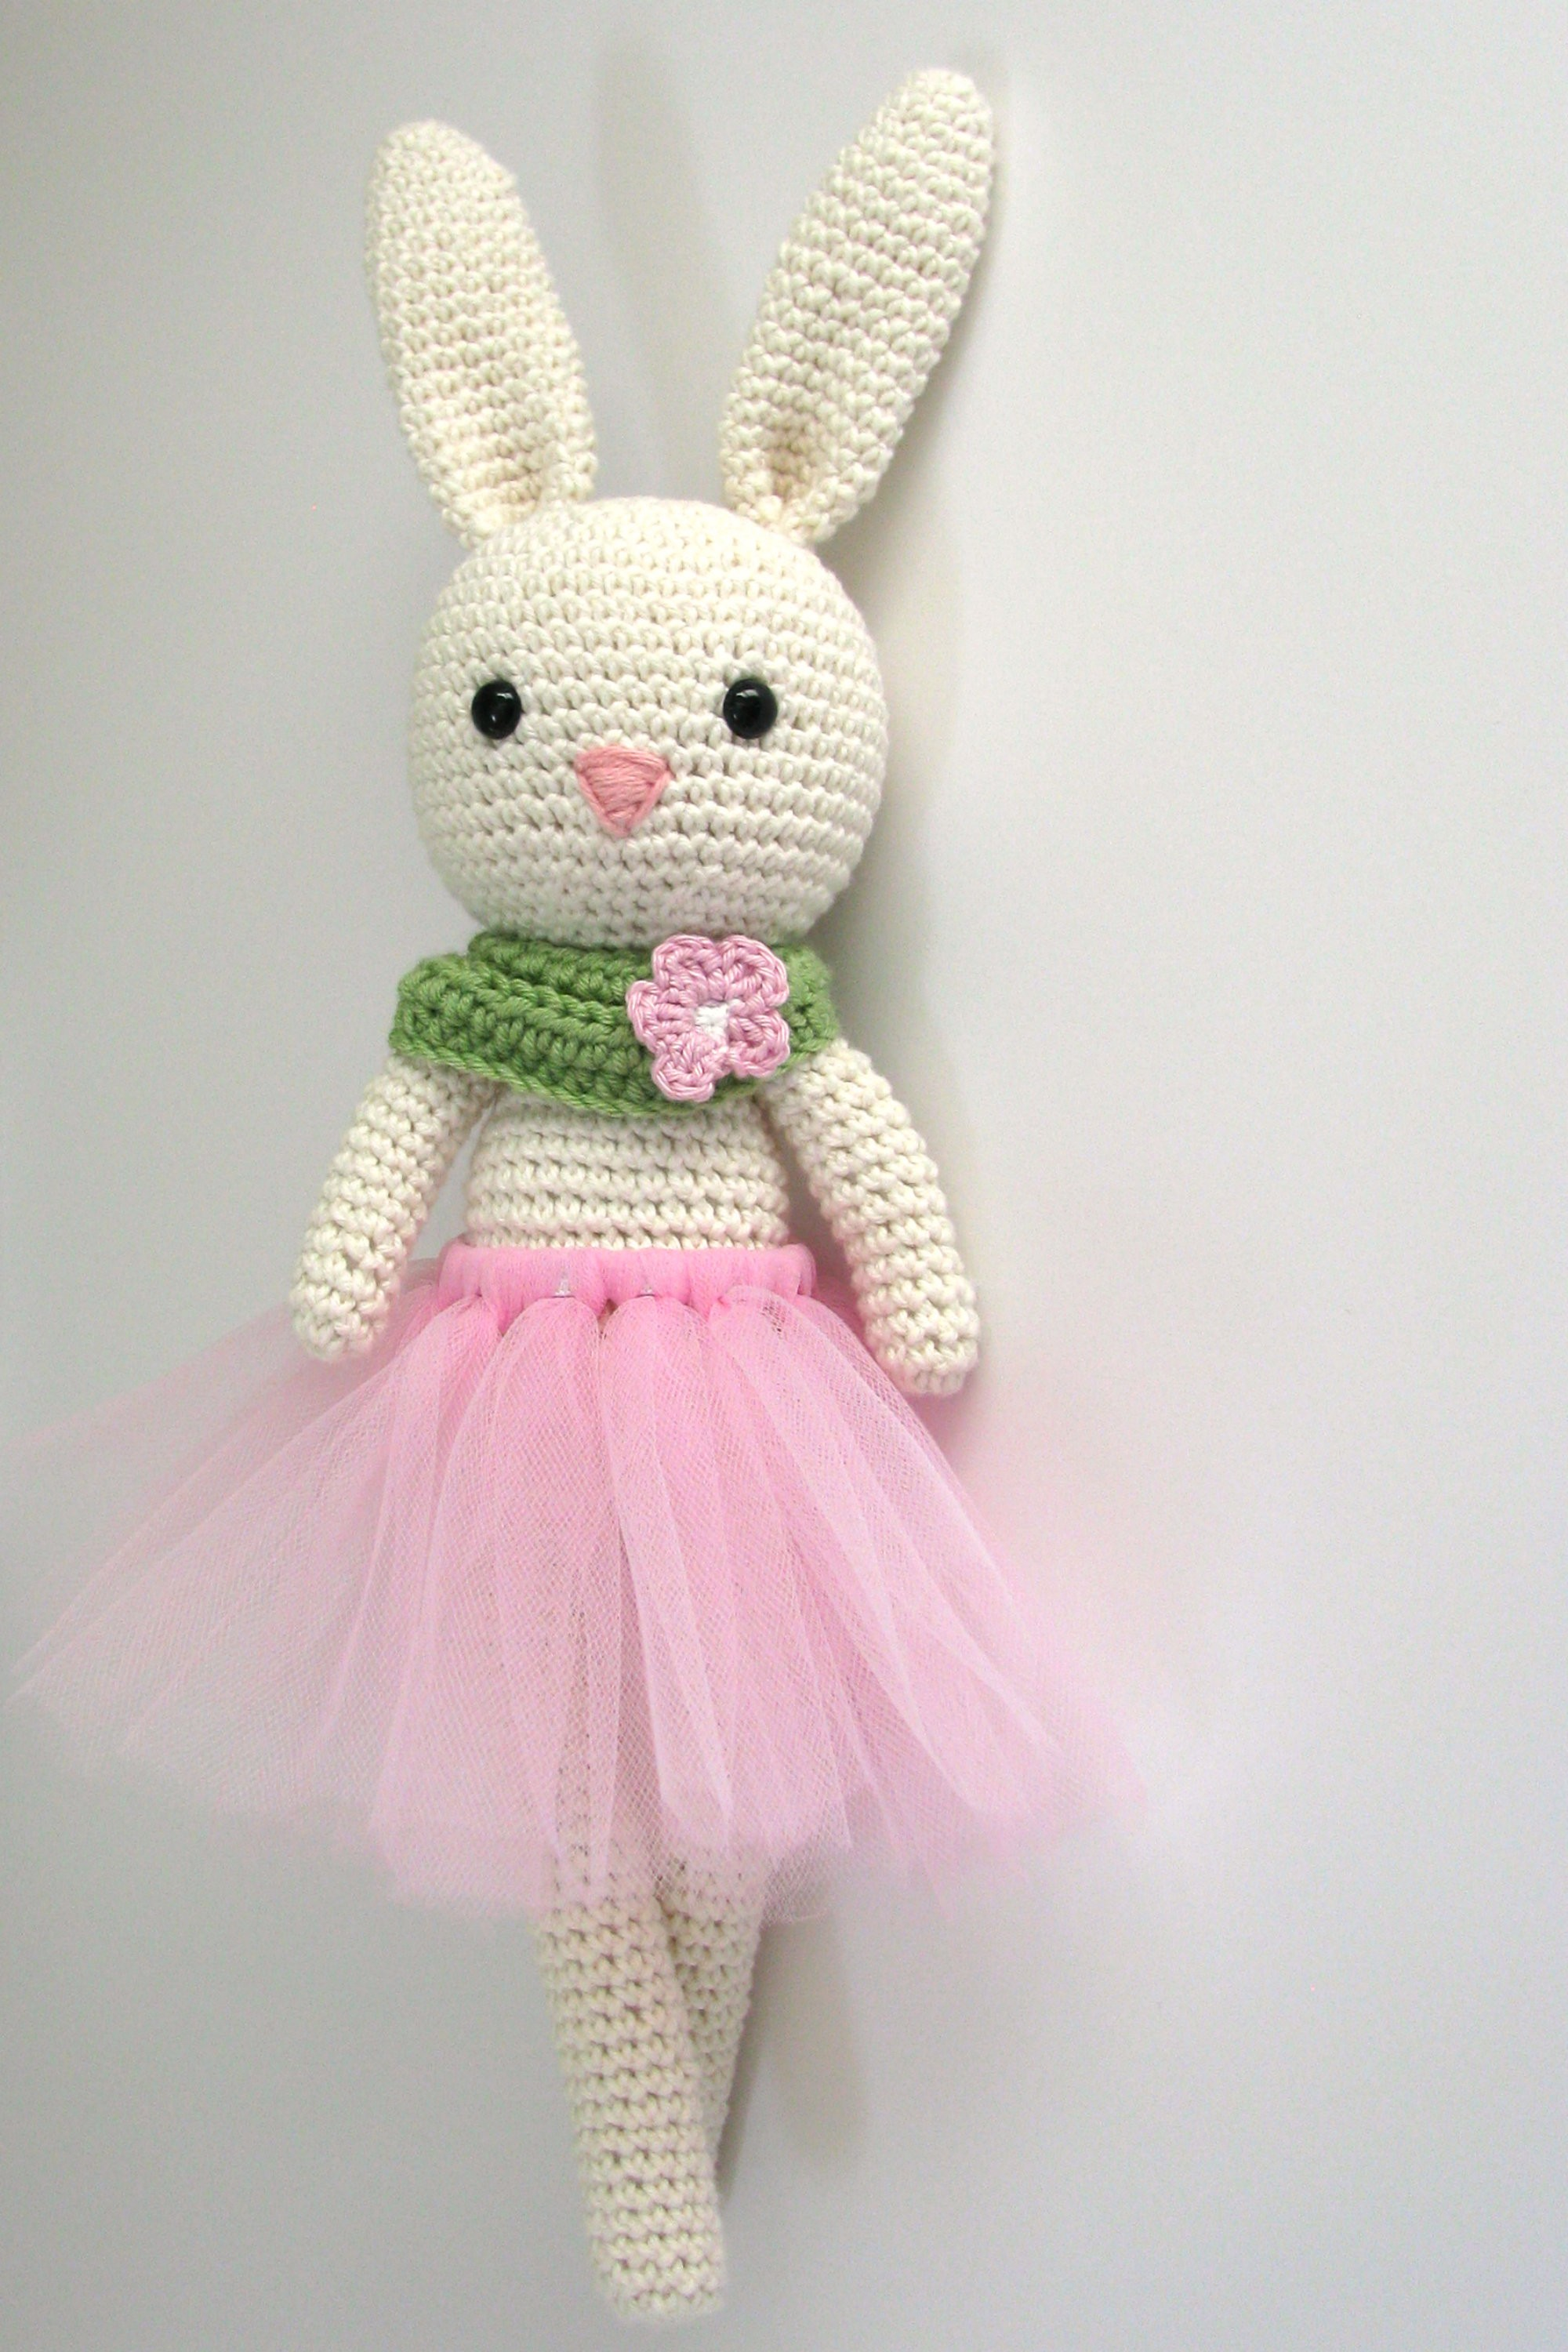 Crochet Doll Pattern - Milena Amigurumi Doll in Pink clothes, doll ... | 3000x2000